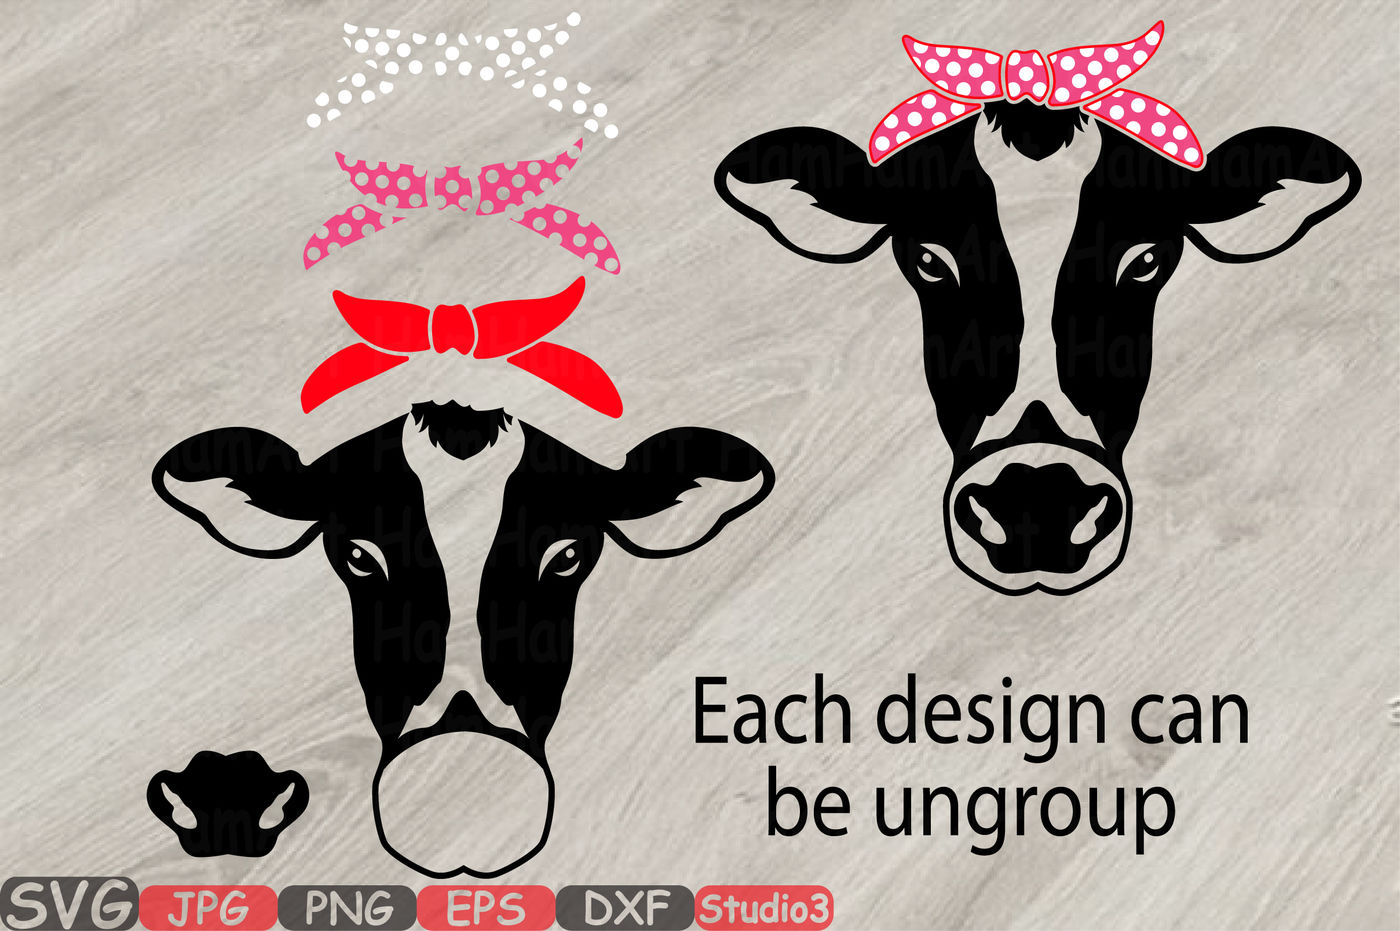 Bandana Design Svg